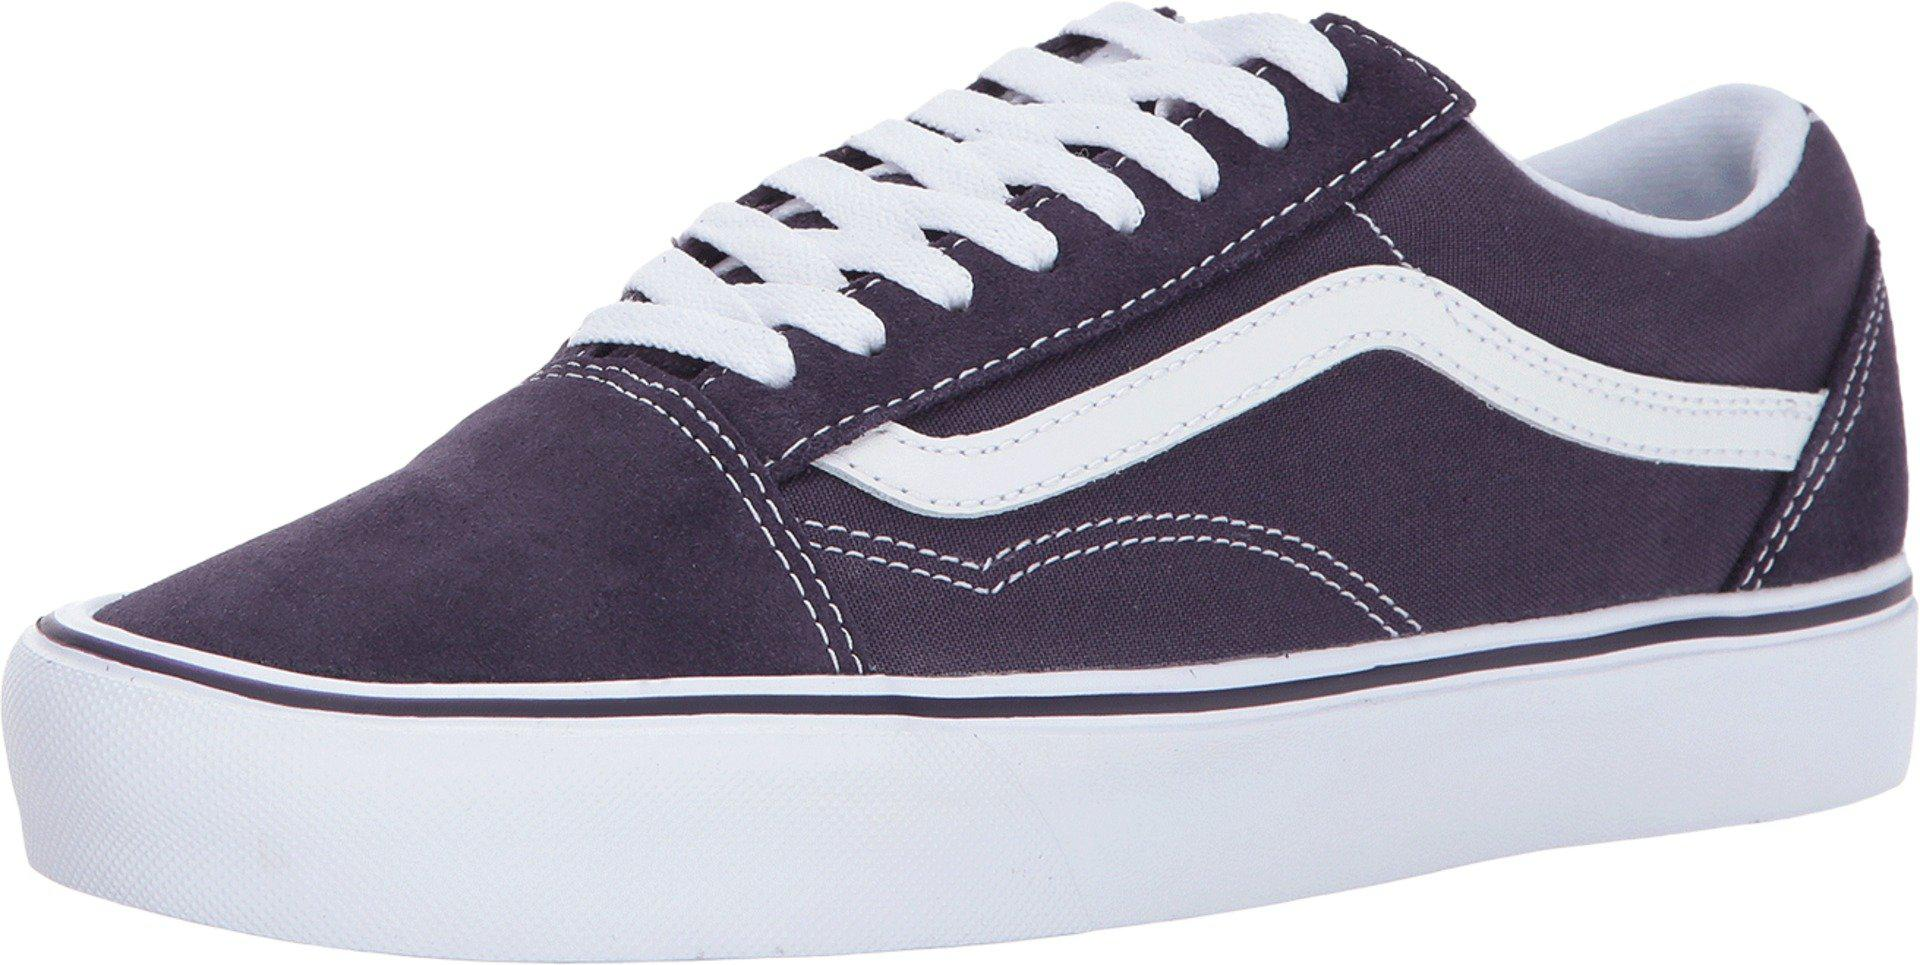 5def446f375723 Gallery. Previously sold at  Zappos · Men s Vans Old Skool ...